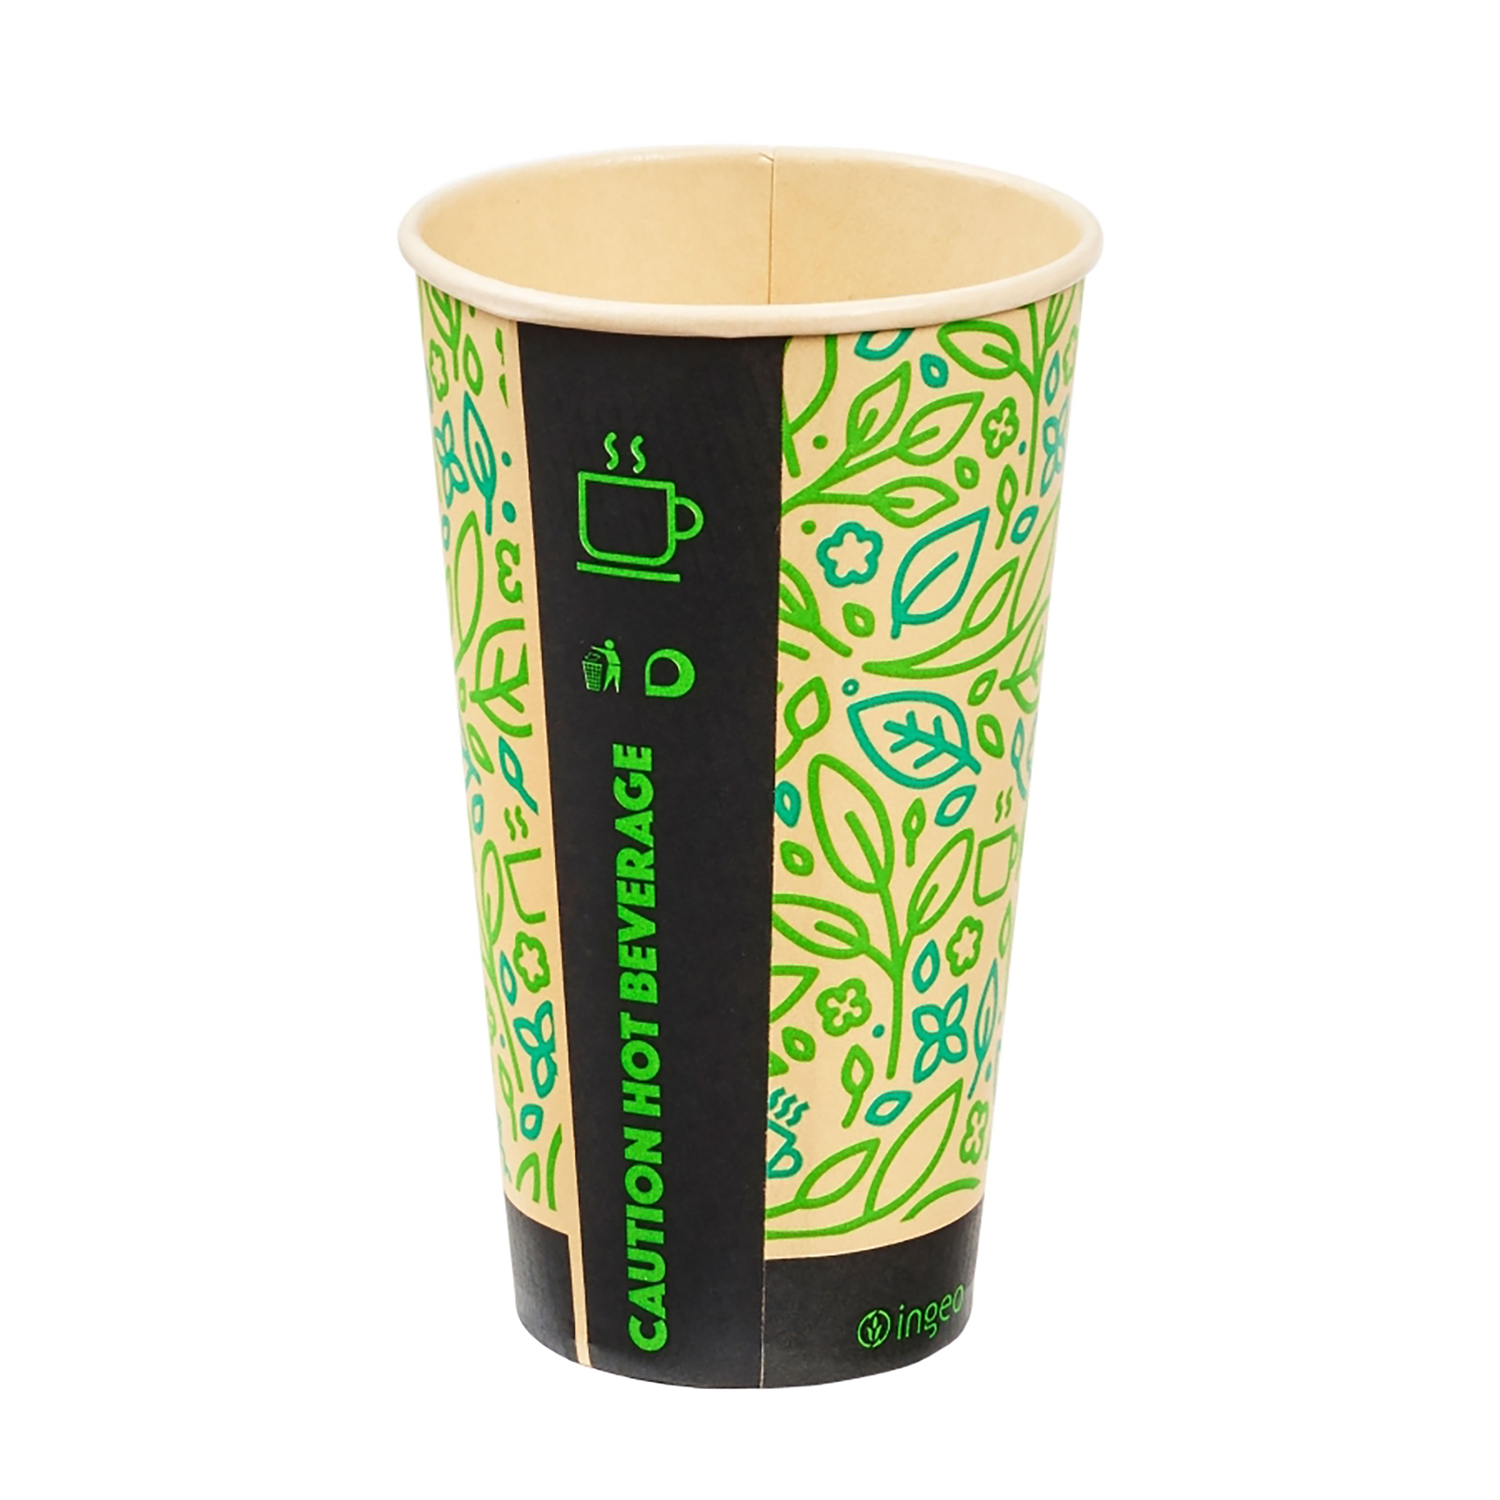 Domestic disposable cups or glasses or lids Ingeo Ultimate Eco Bamboo 16oz Biodegradable Disposable Cups Ref 0511225 [Pack 25]